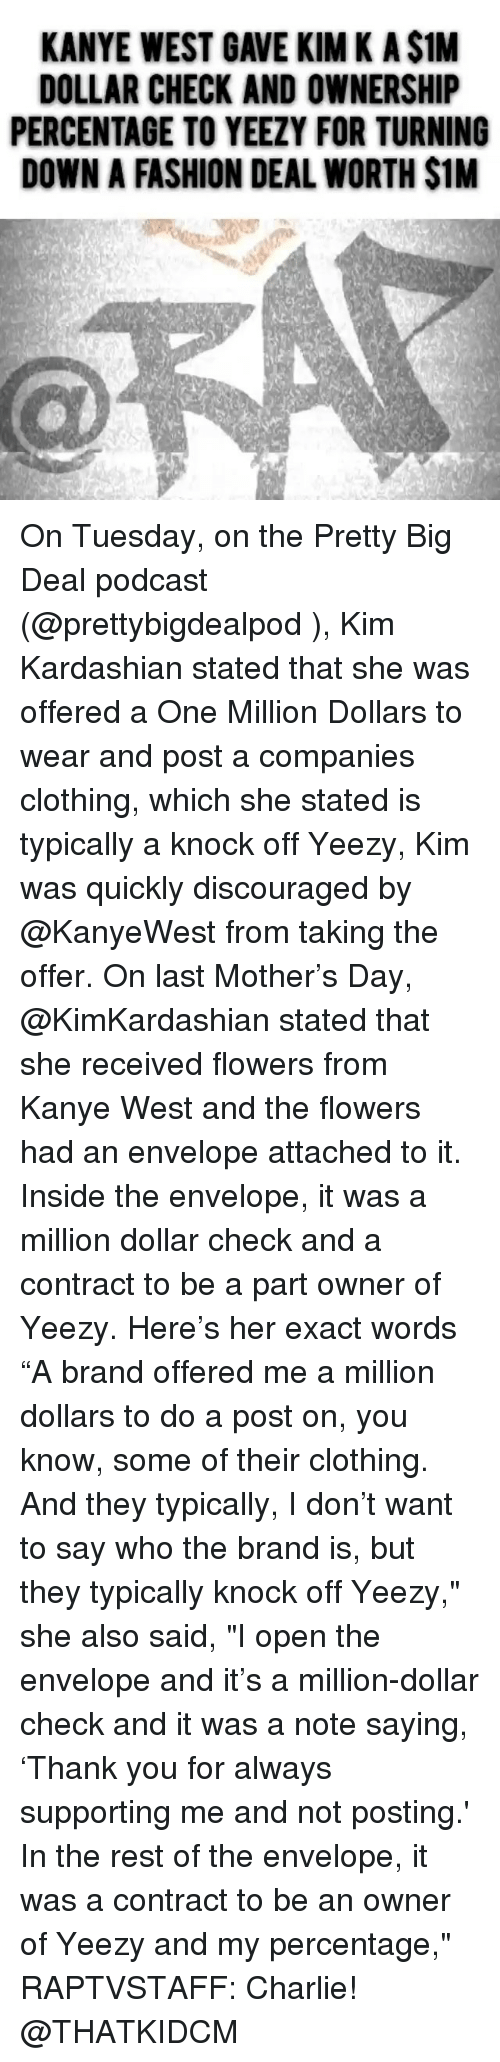 "kimkardashian: KANYE WEST GAVE KIM K A $1M  DOLLAR CHECK AND OWNERSHIP  PERCENTAGE TO YEEZY FOR TURNING  DOWN A FASHION DEAL WORTH $1M On Tuesday, on the Pretty Big Deal podcast (@prettybigdealpod ), Kim Kardashian stated that she was offered a One Million Dollars to wear and post a companies clothing, which she stated is typically a knock off Yeezy, Kim was quickly discouraged by @KanyeWest from taking the offer. On last Mother's Day, @KimKardashian stated that she received flowers from Kanye West and the flowers had an envelope attached to it. Inside the envelope, it was a million dollar check and a contract to be a part owner of Yeezy. Here's her exact words ""A brand offered me a million dollars to do a post on, you know, some of their clothing. And they typically, I don't want to say who the brand is, but they typically knock off Yeezy,"" she also said, ""I open the envelope and it's a million-dollar check and it was a note saying, 'Thank you for always supporting me and not posting.' In the rest of the envelope, it was a contract to be an owner of Yeezy and my percentage,"" RAPTVSTAFF: Charlie! @THATKIDCM"